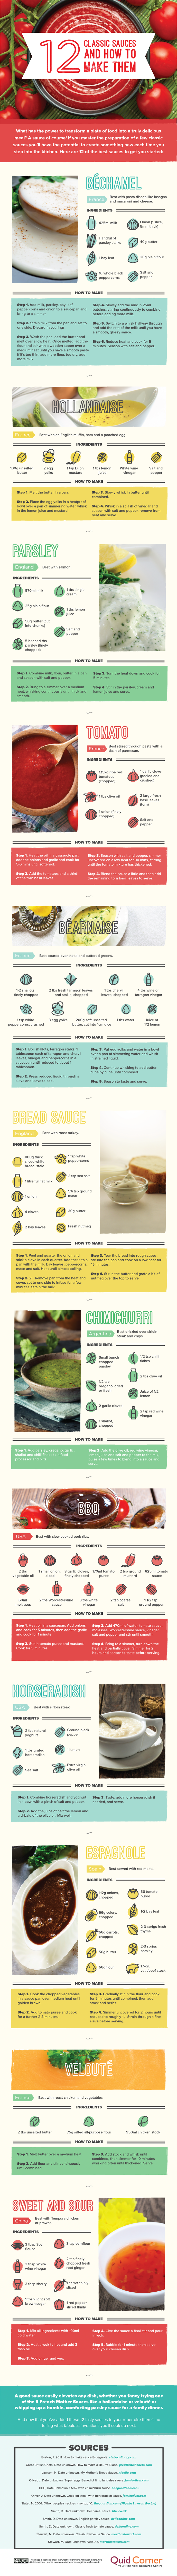 12-classic-sauces-and-how-to-make-them-DV3